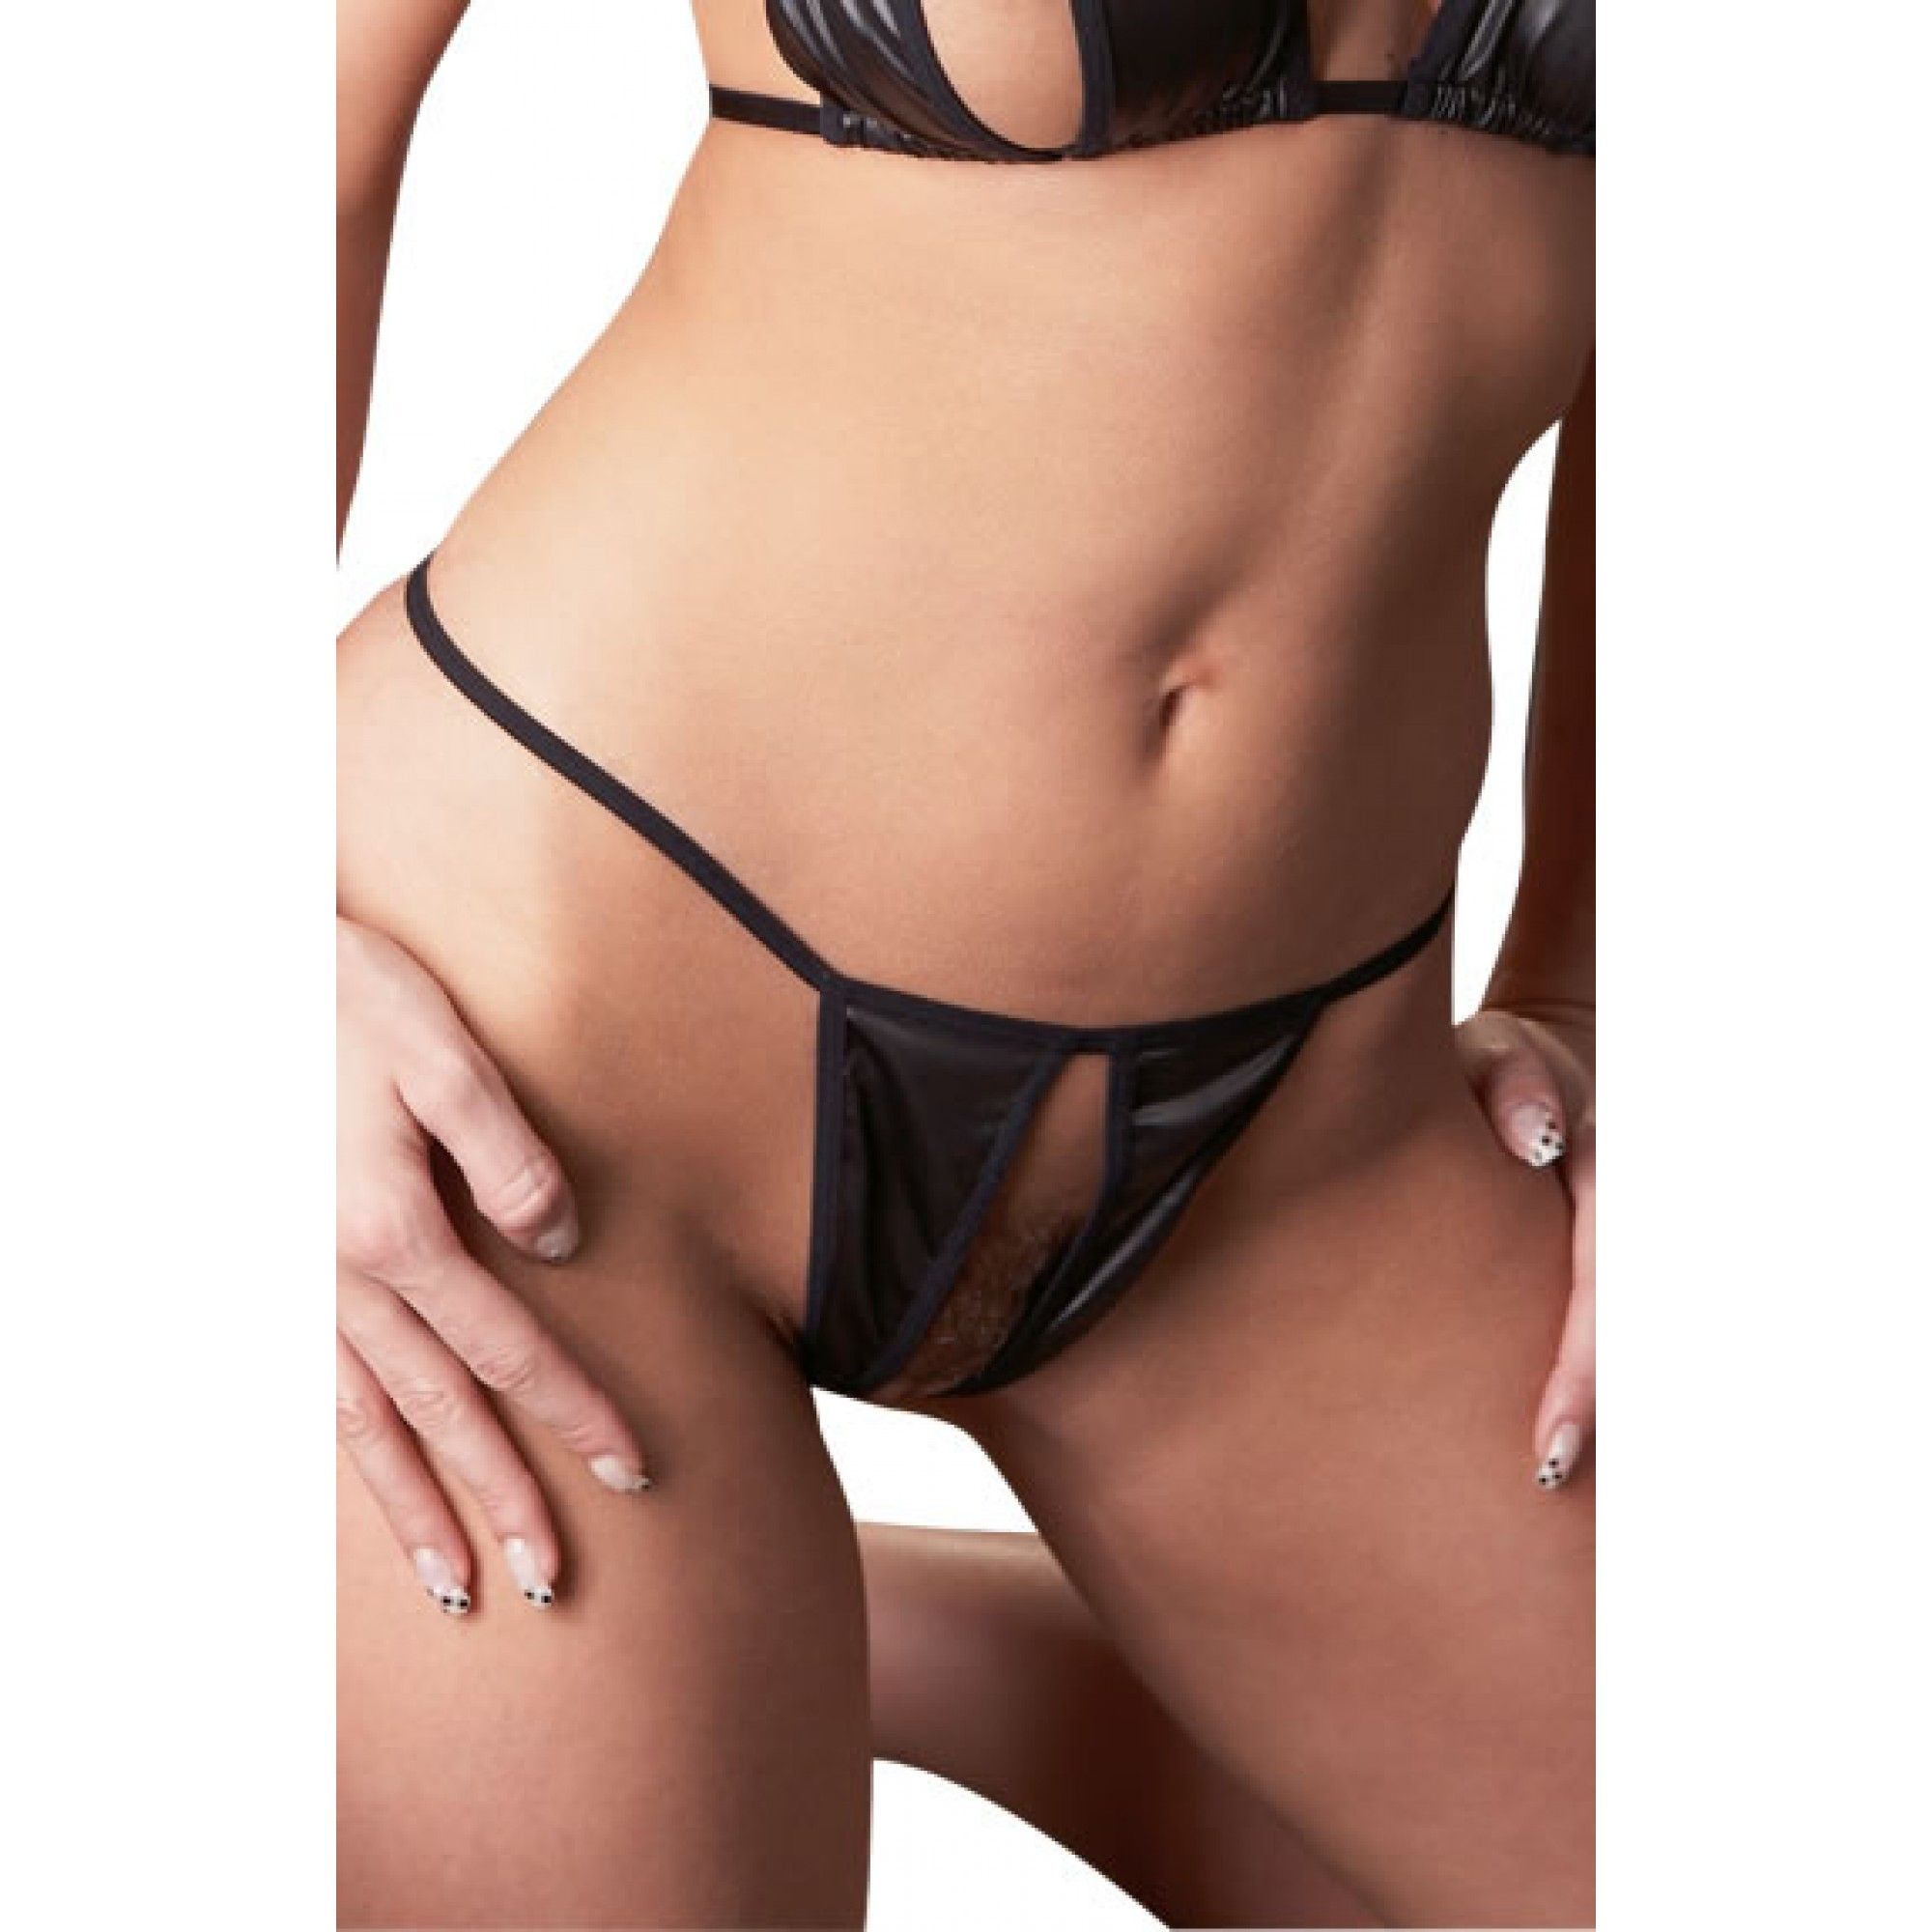 gothenburg escorts sex underkläder